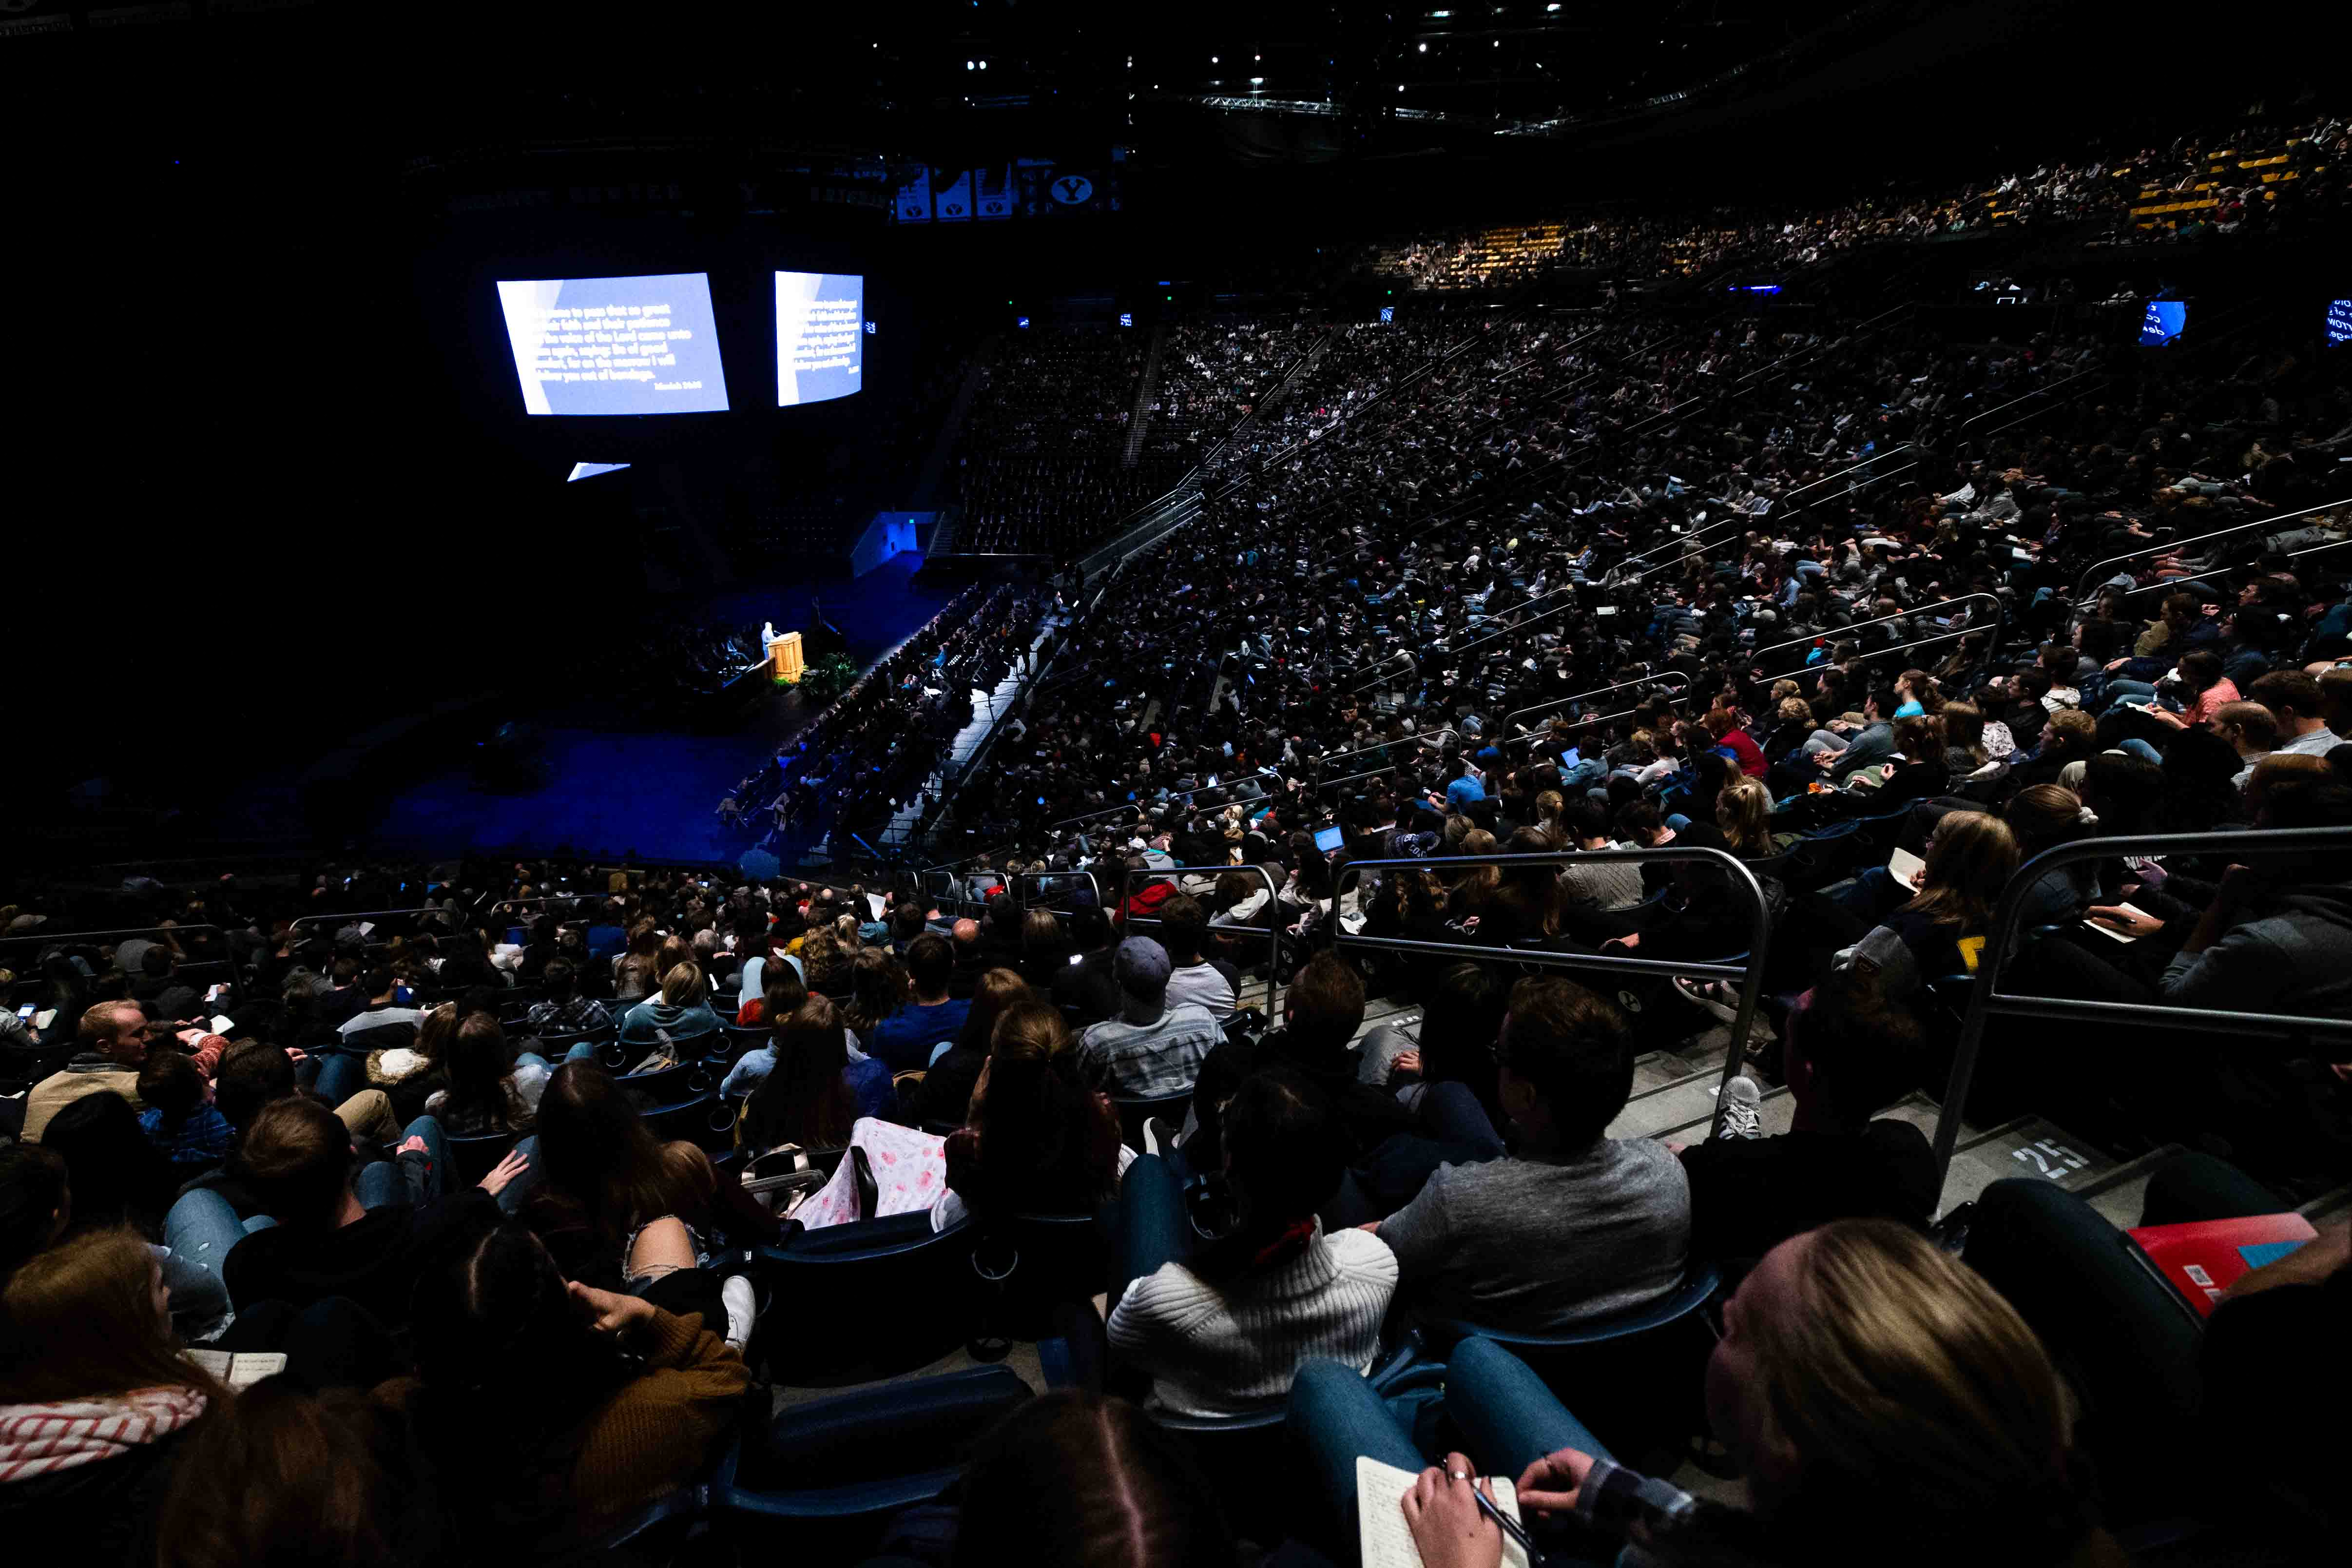 Students gather in the Marriott Center on the campus of BYU in Provo, Utah, to listen to a devotional address by Brother Mark L. Pace on Oct. 29, 2019.